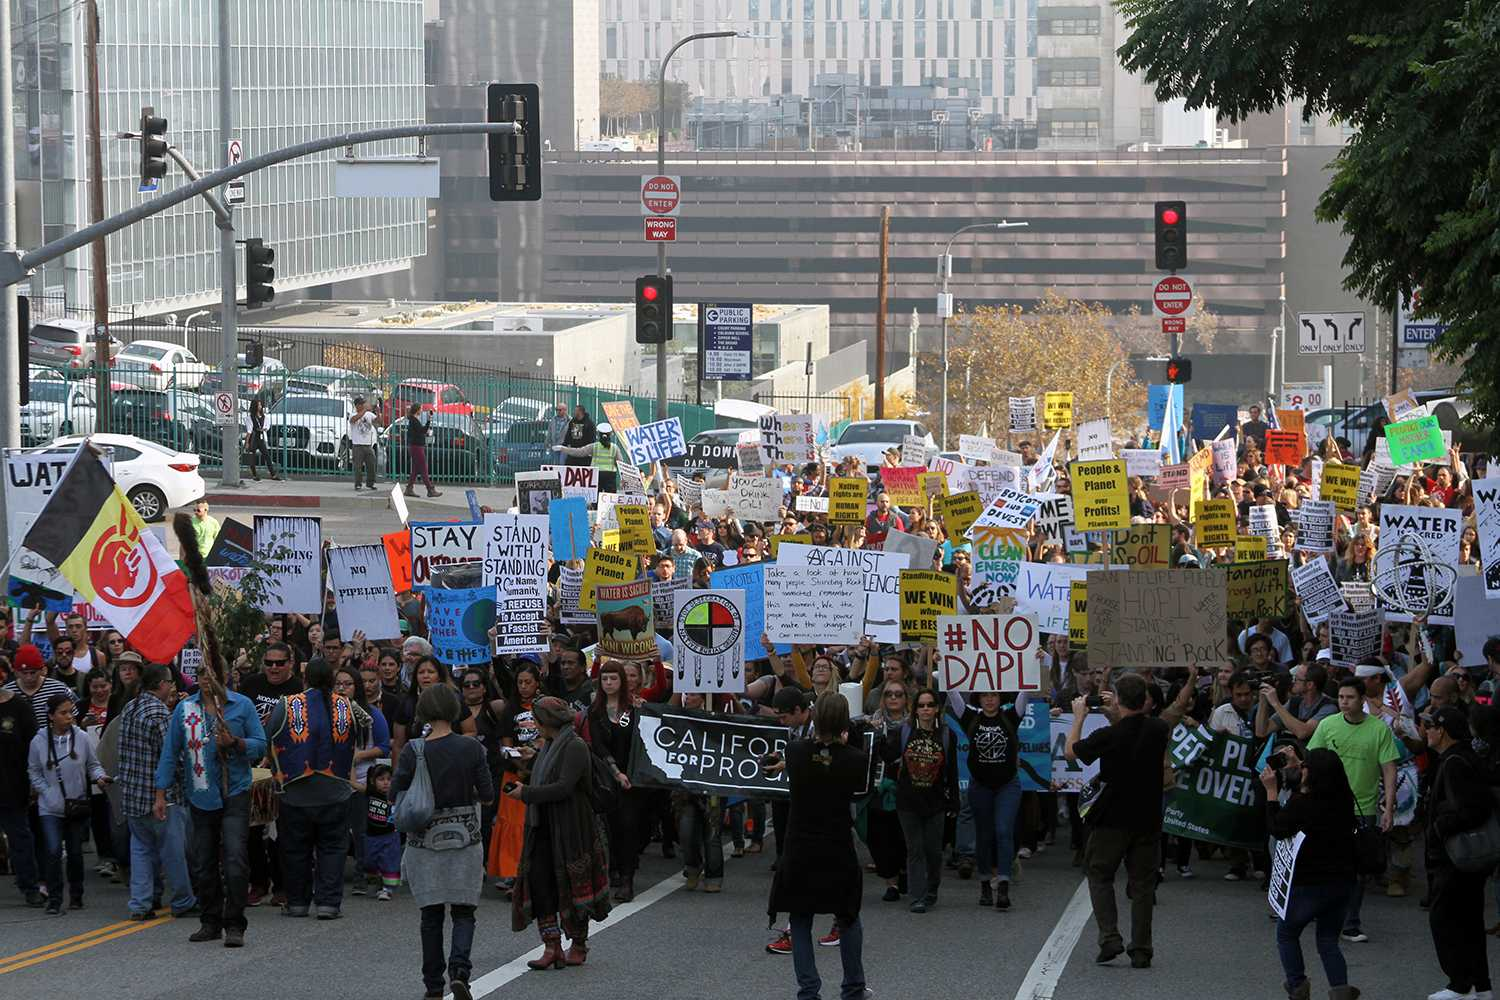 NoDAPL(No Dakota Access Pipeline) demonstrators marching in Pershing Square in Downtown Los Angeles, Dec 10, 2016. Photo Credit: Anoil Servenous